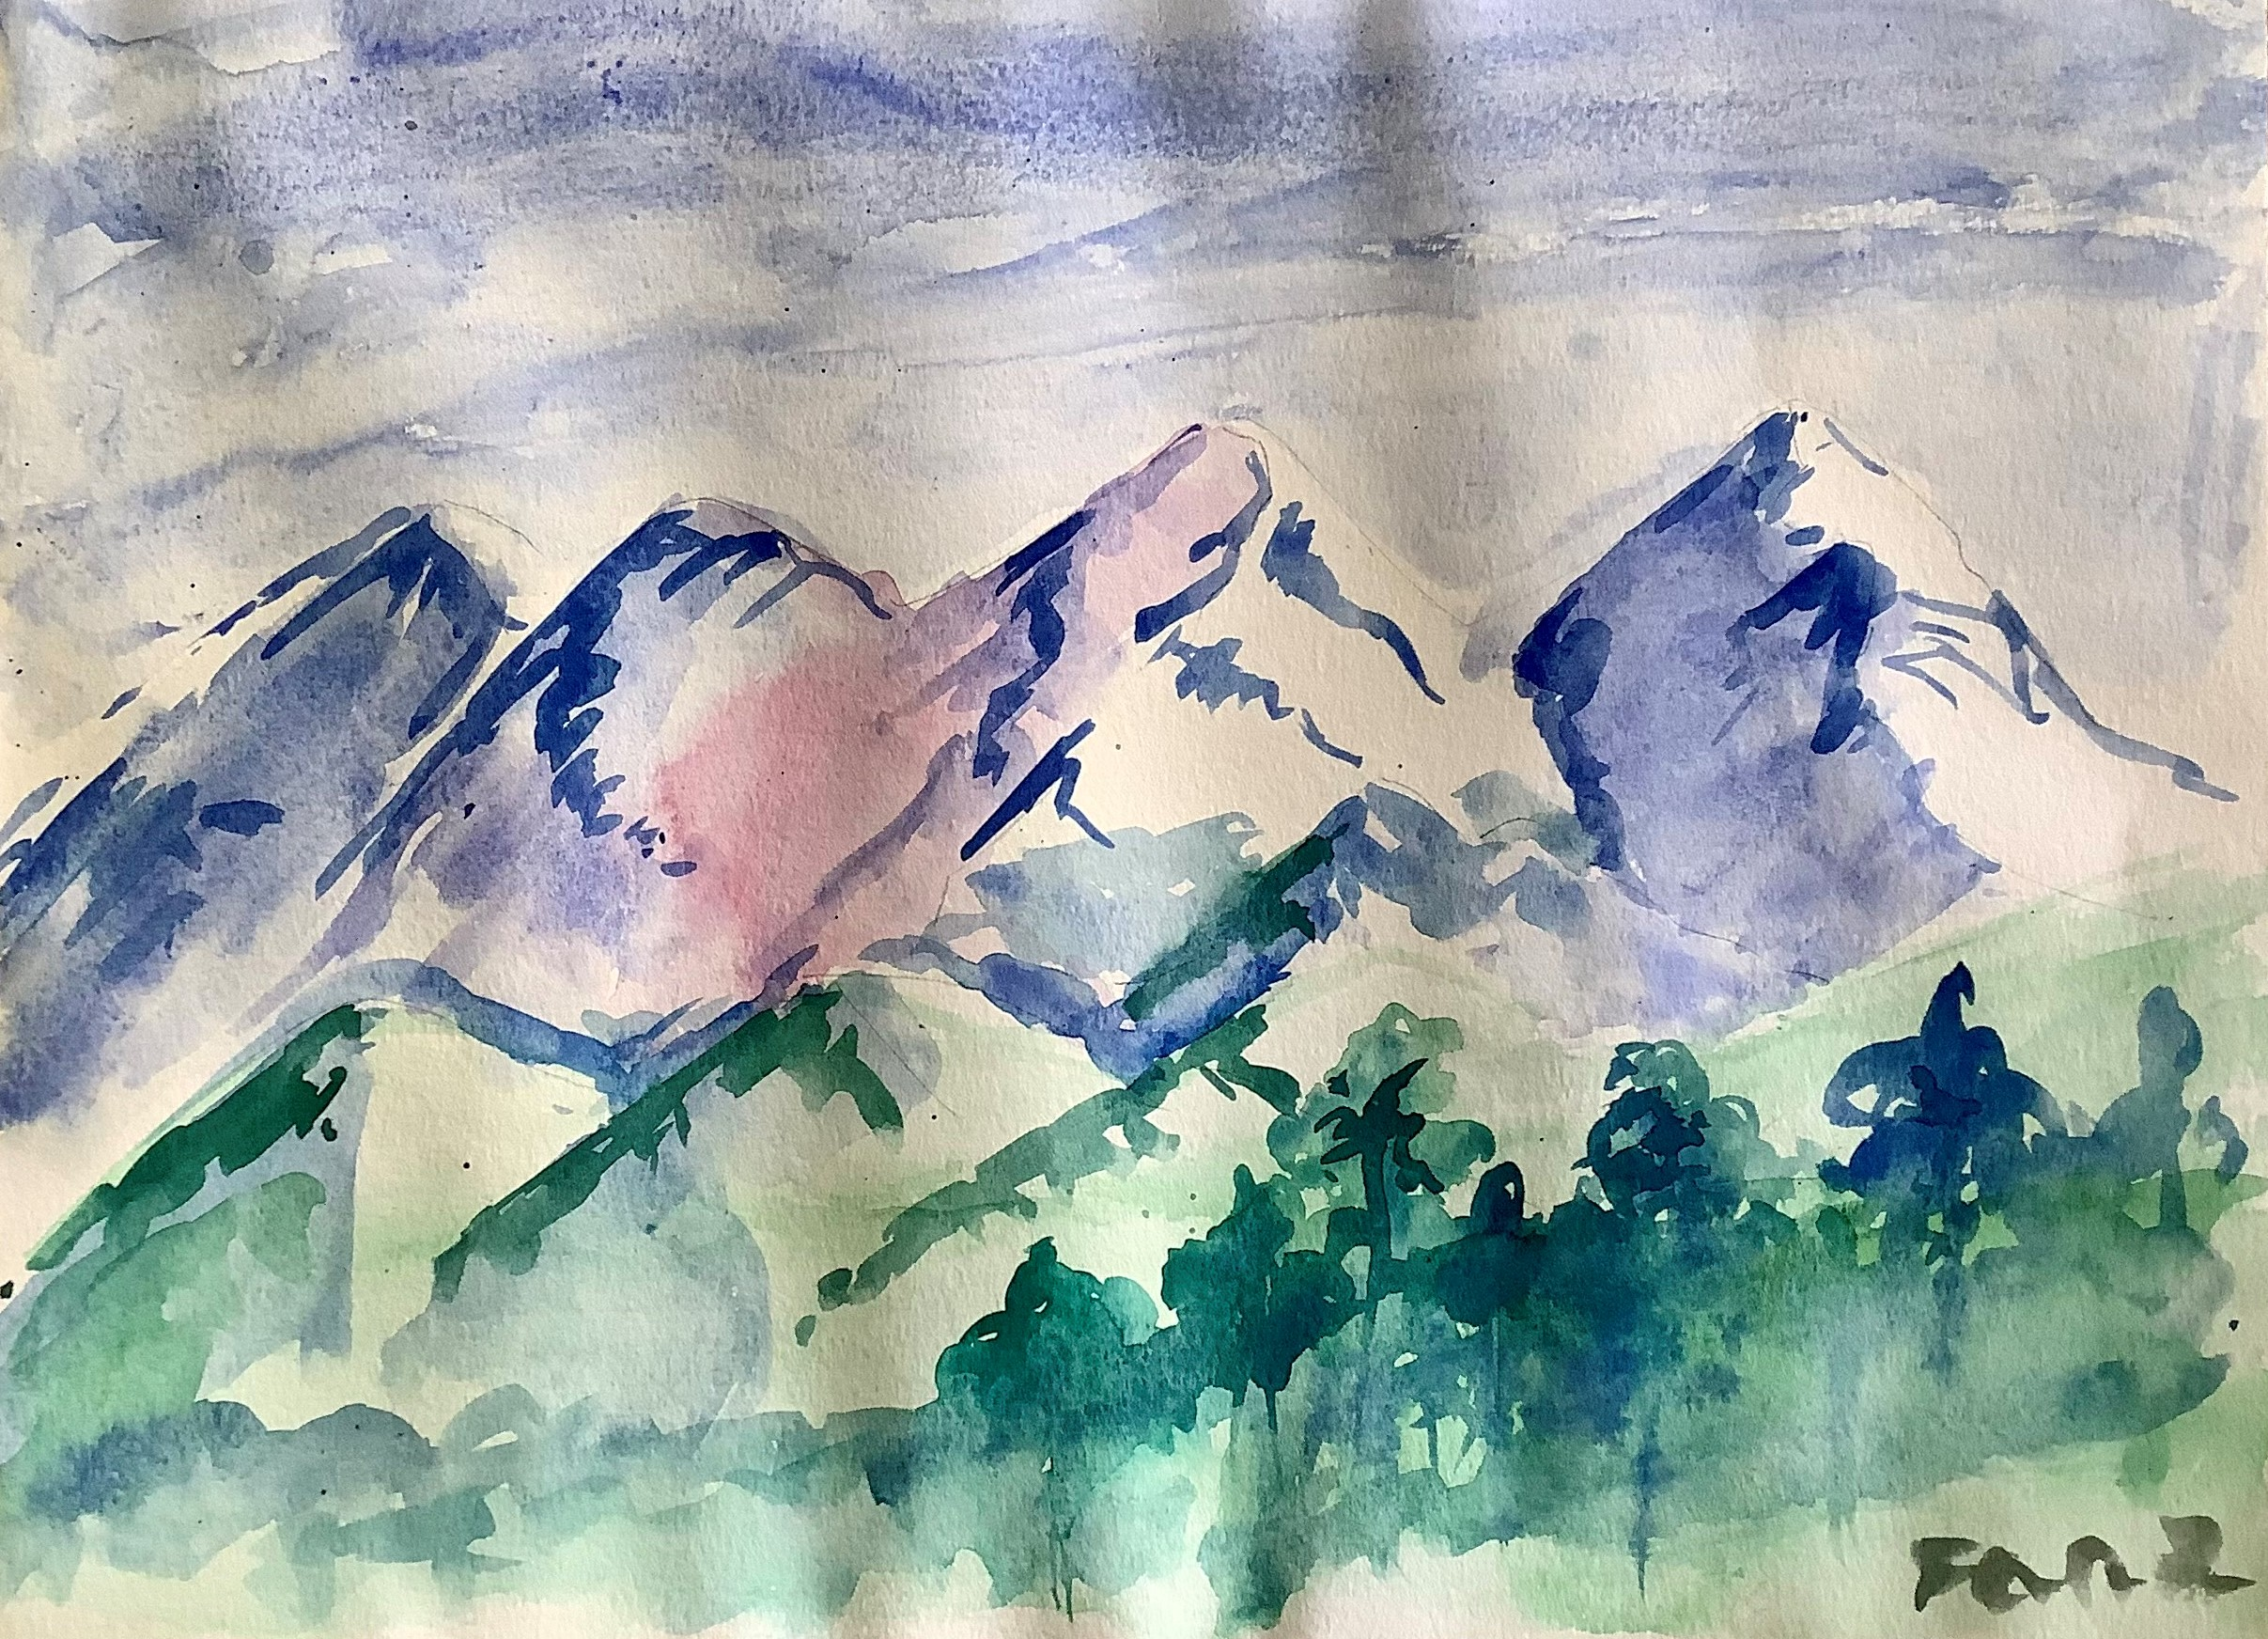 Mountains by Faaz Wahed